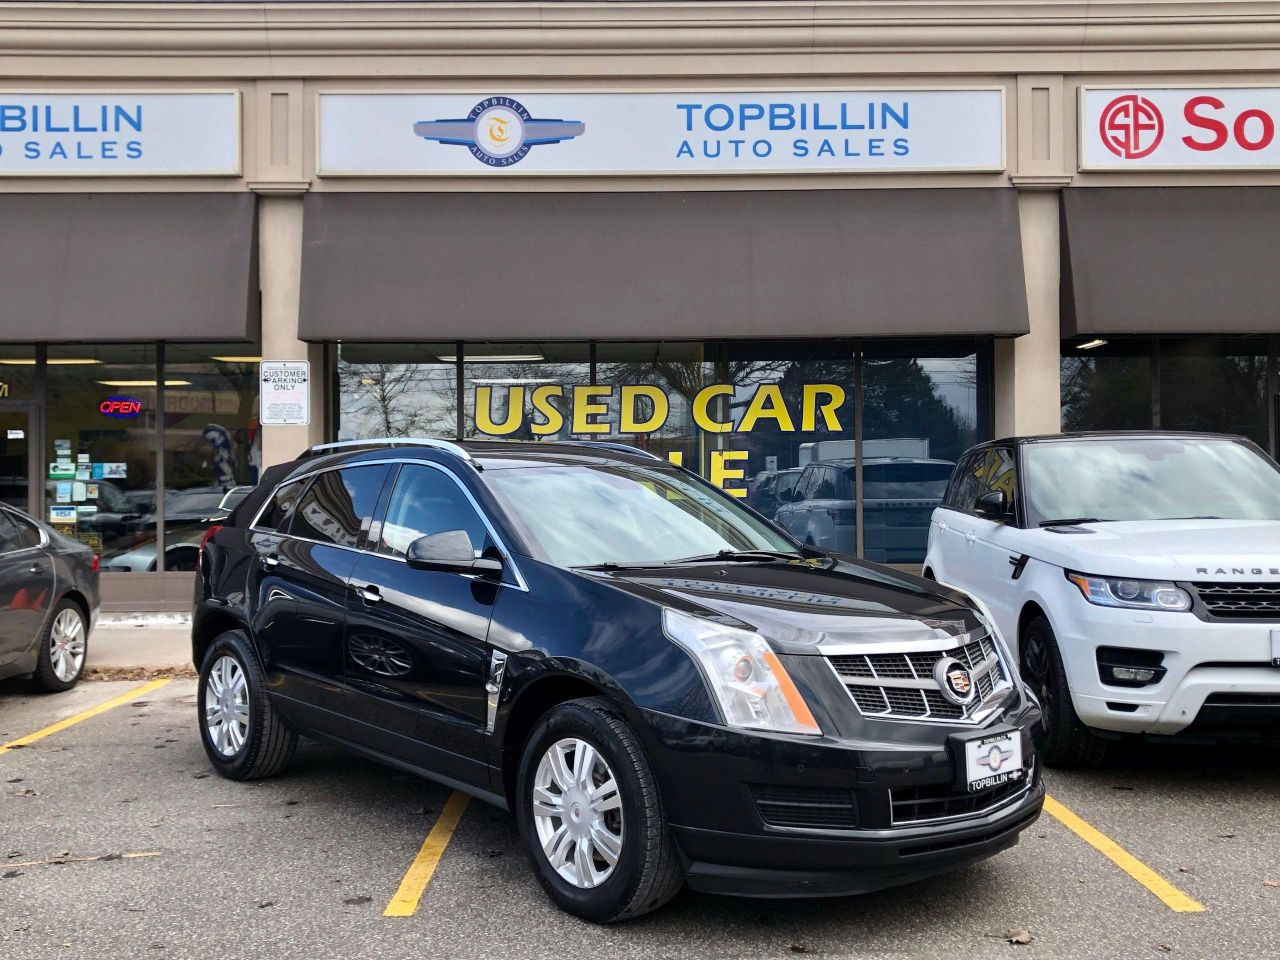 2011 Cadillac SRX 3.0 Luxury, Leather, Panoramic Roof